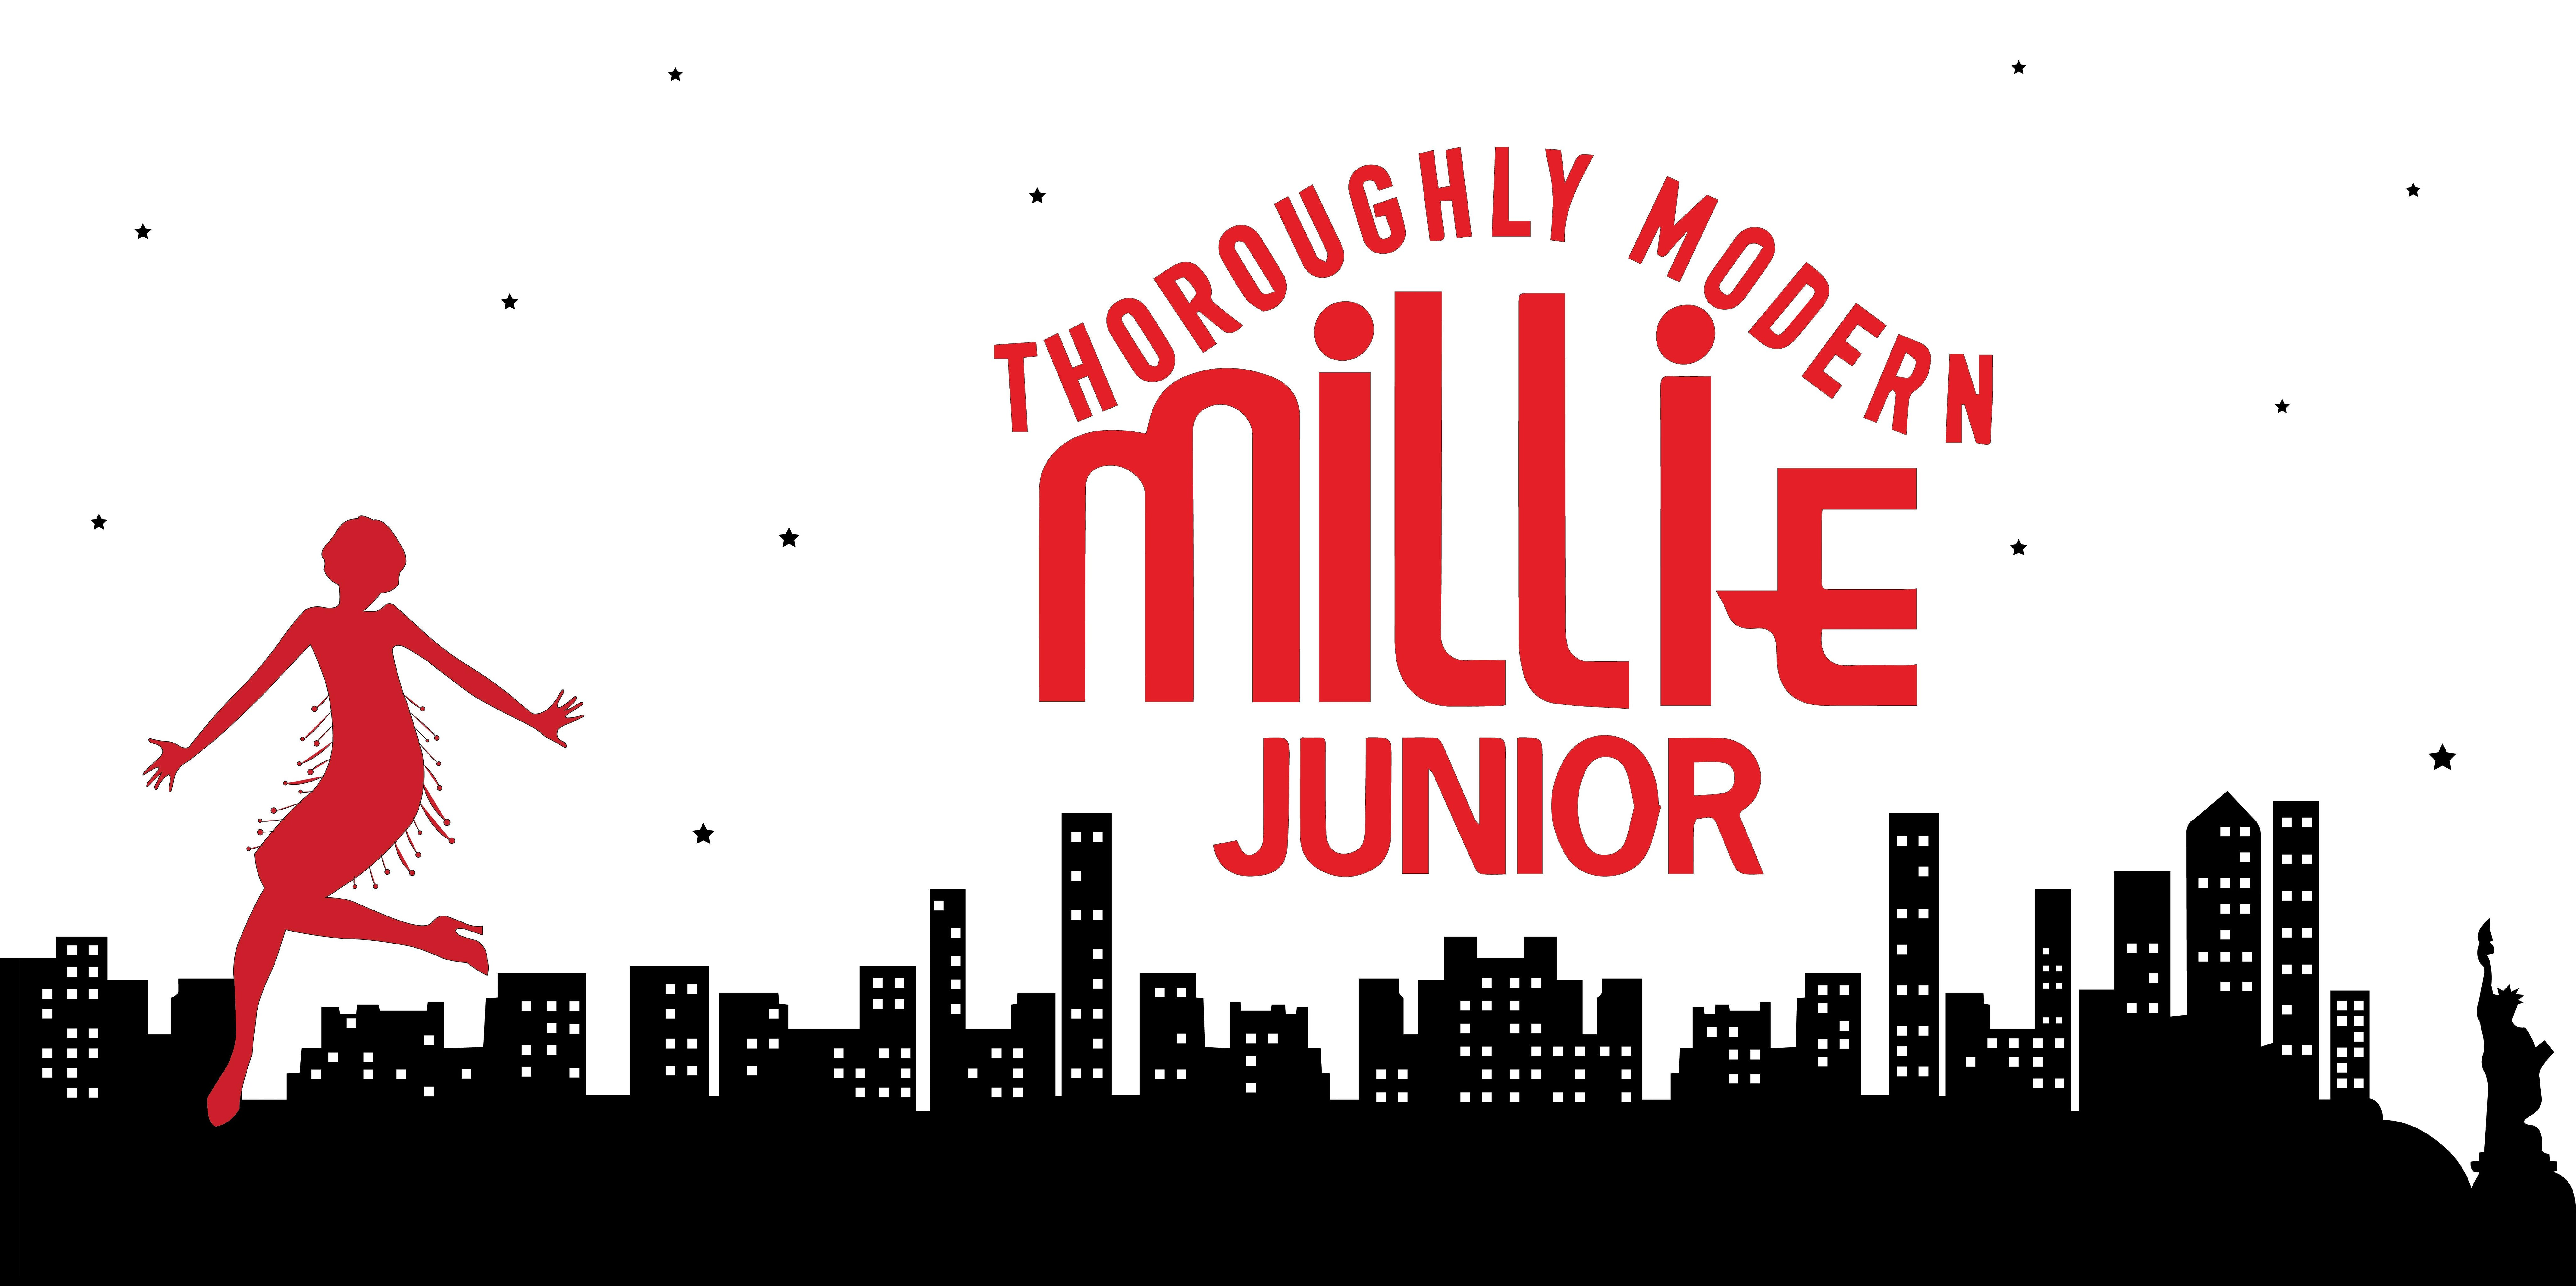 Thoroughly Modern Millie Jr -- Friday March 2